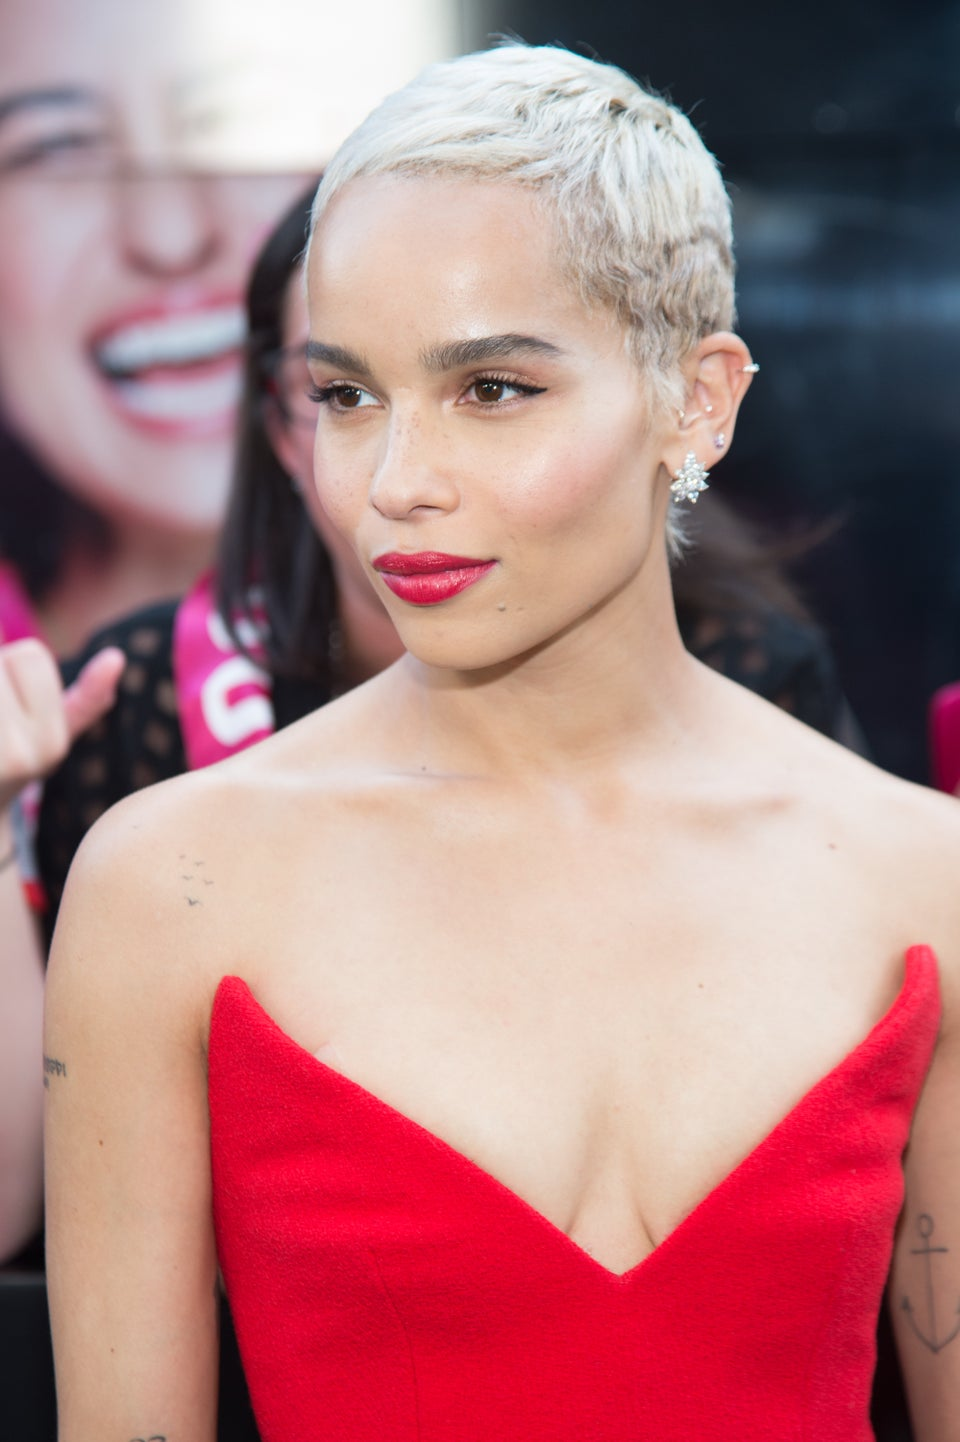 Zoe Kravitz Basically Confirms That She Hooked Up With Drake